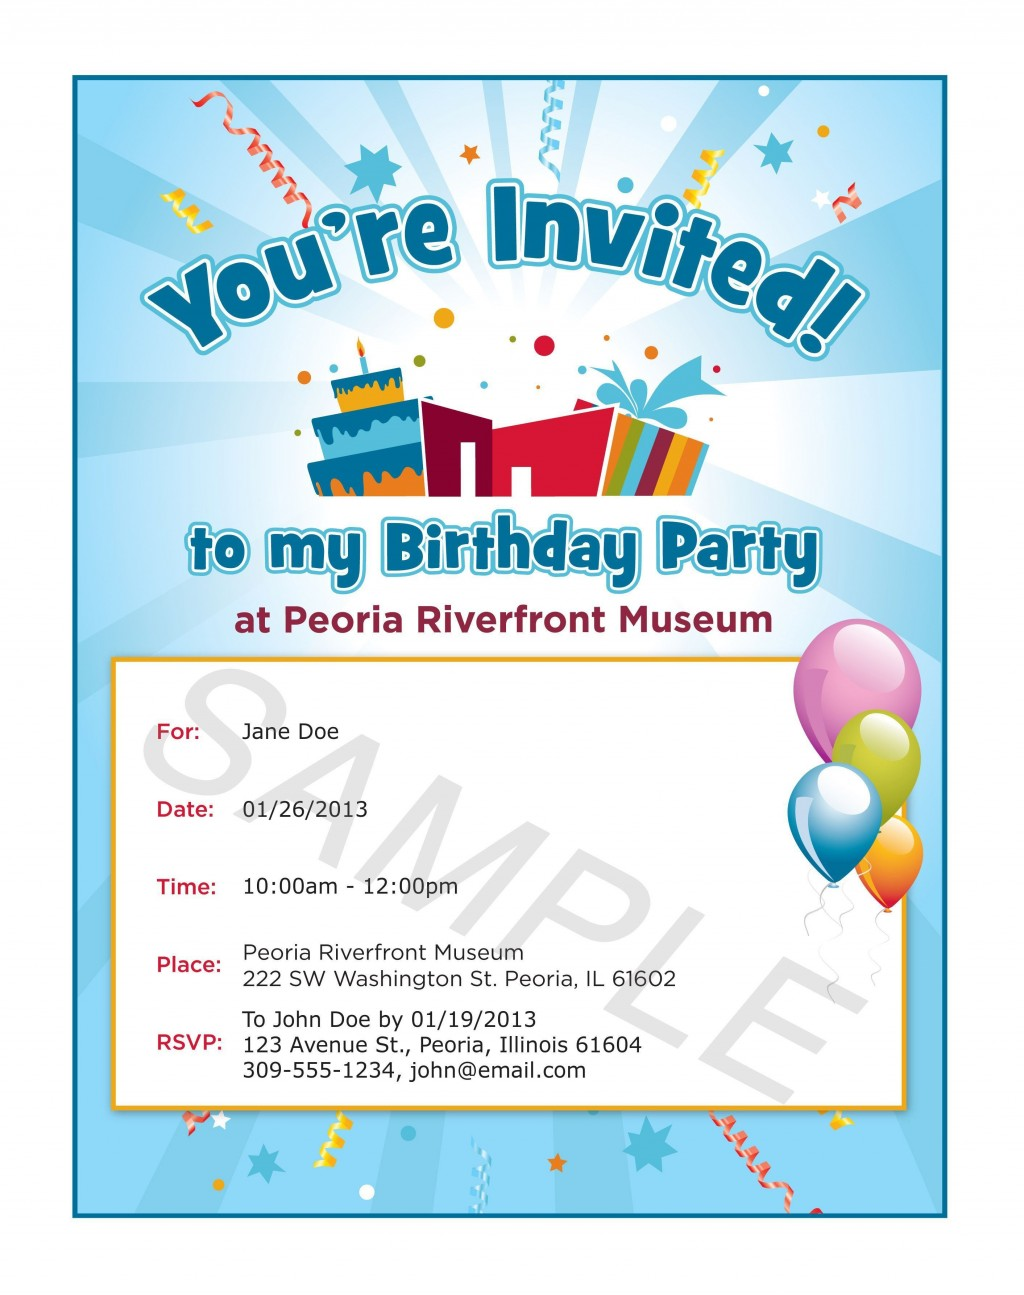 005 Shocking Birthday Invitation Wording Example High Def  Examples Party Invite Brunch IdeaLarge